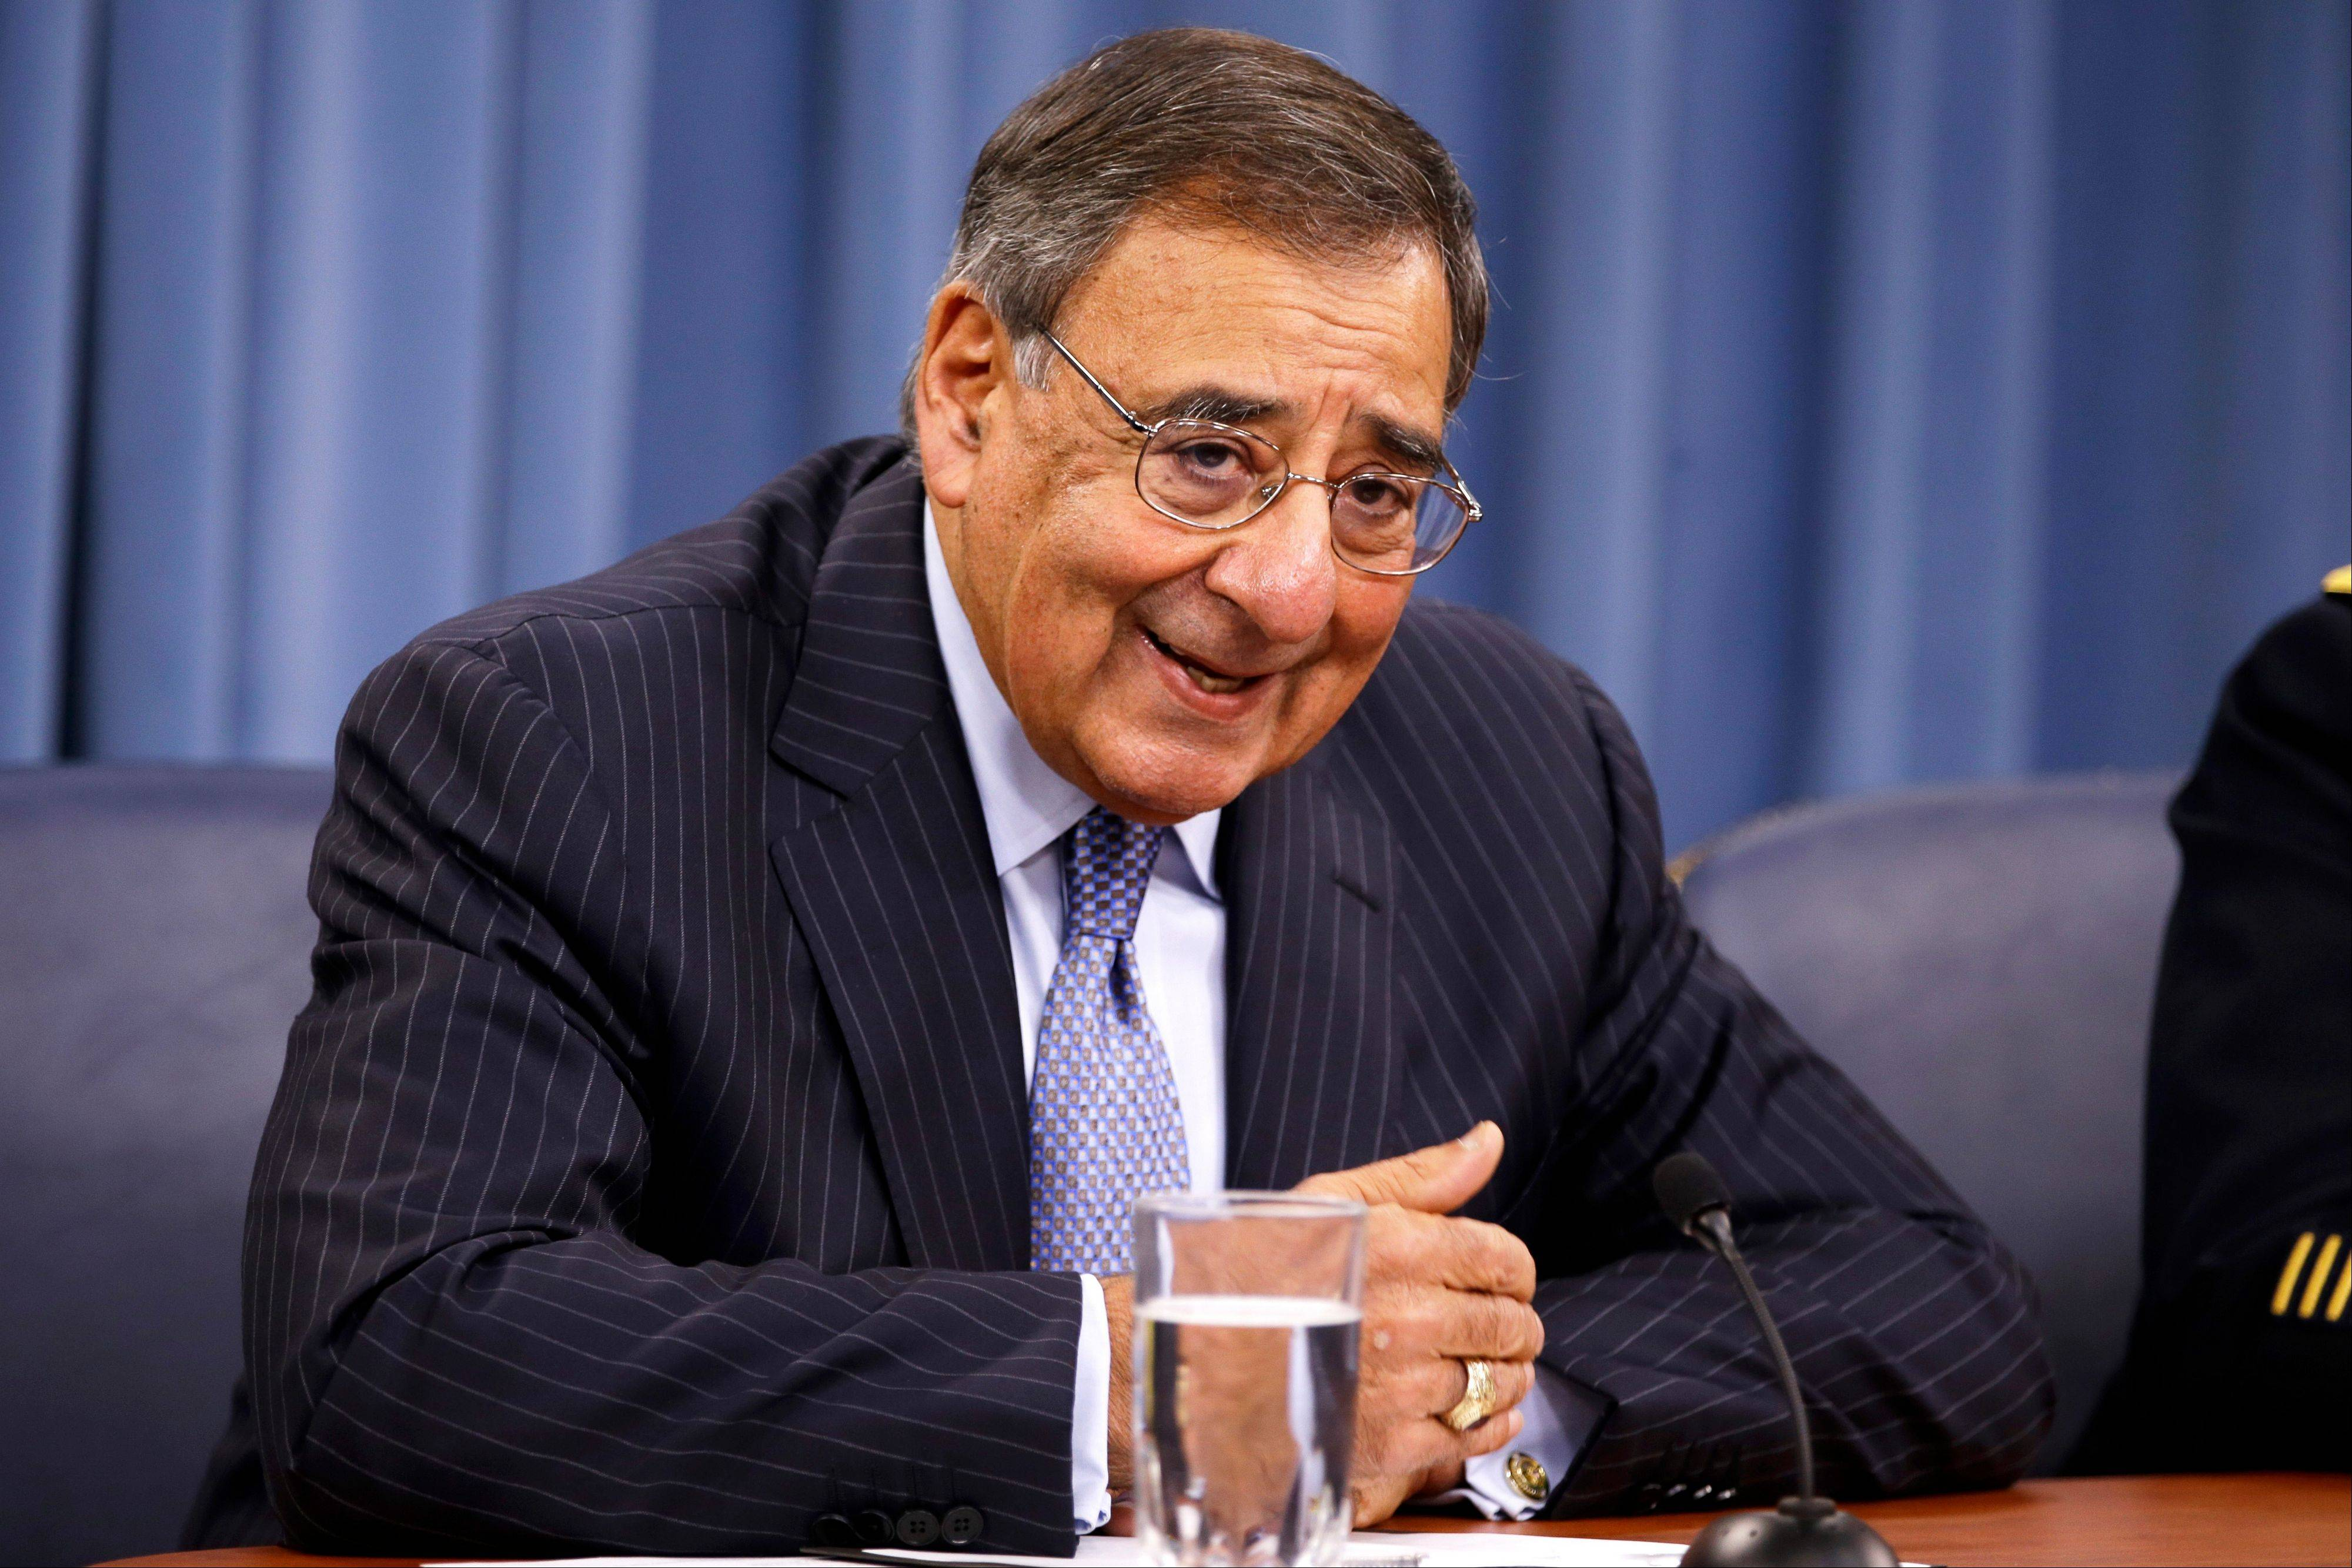 Defense Secretary Leon Panetta speaks at a news conference at the Pentagon on Thursday.